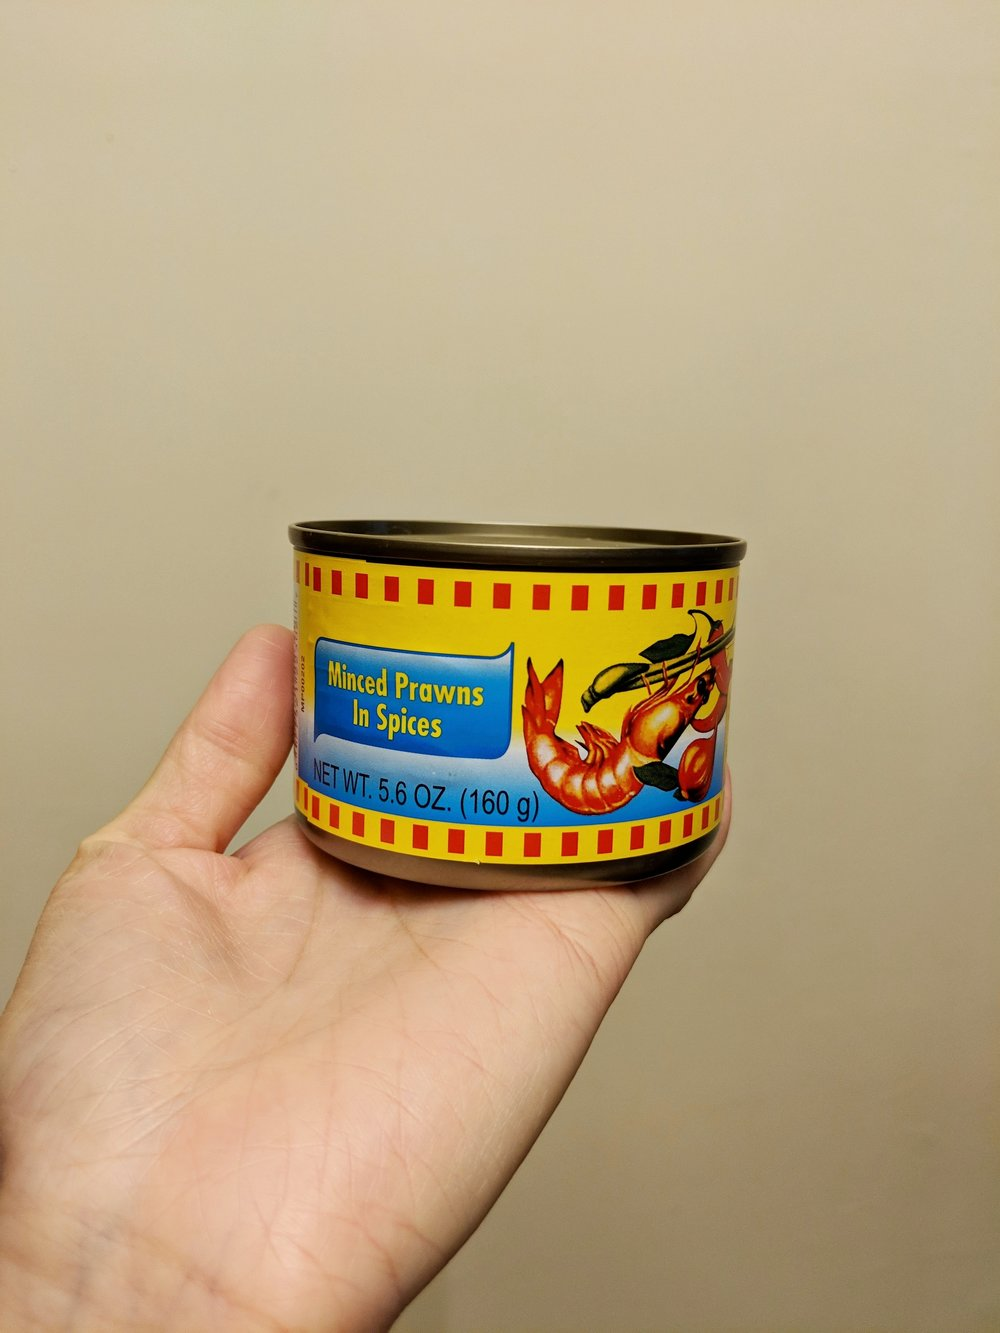 Fear not, there is english on the can too!